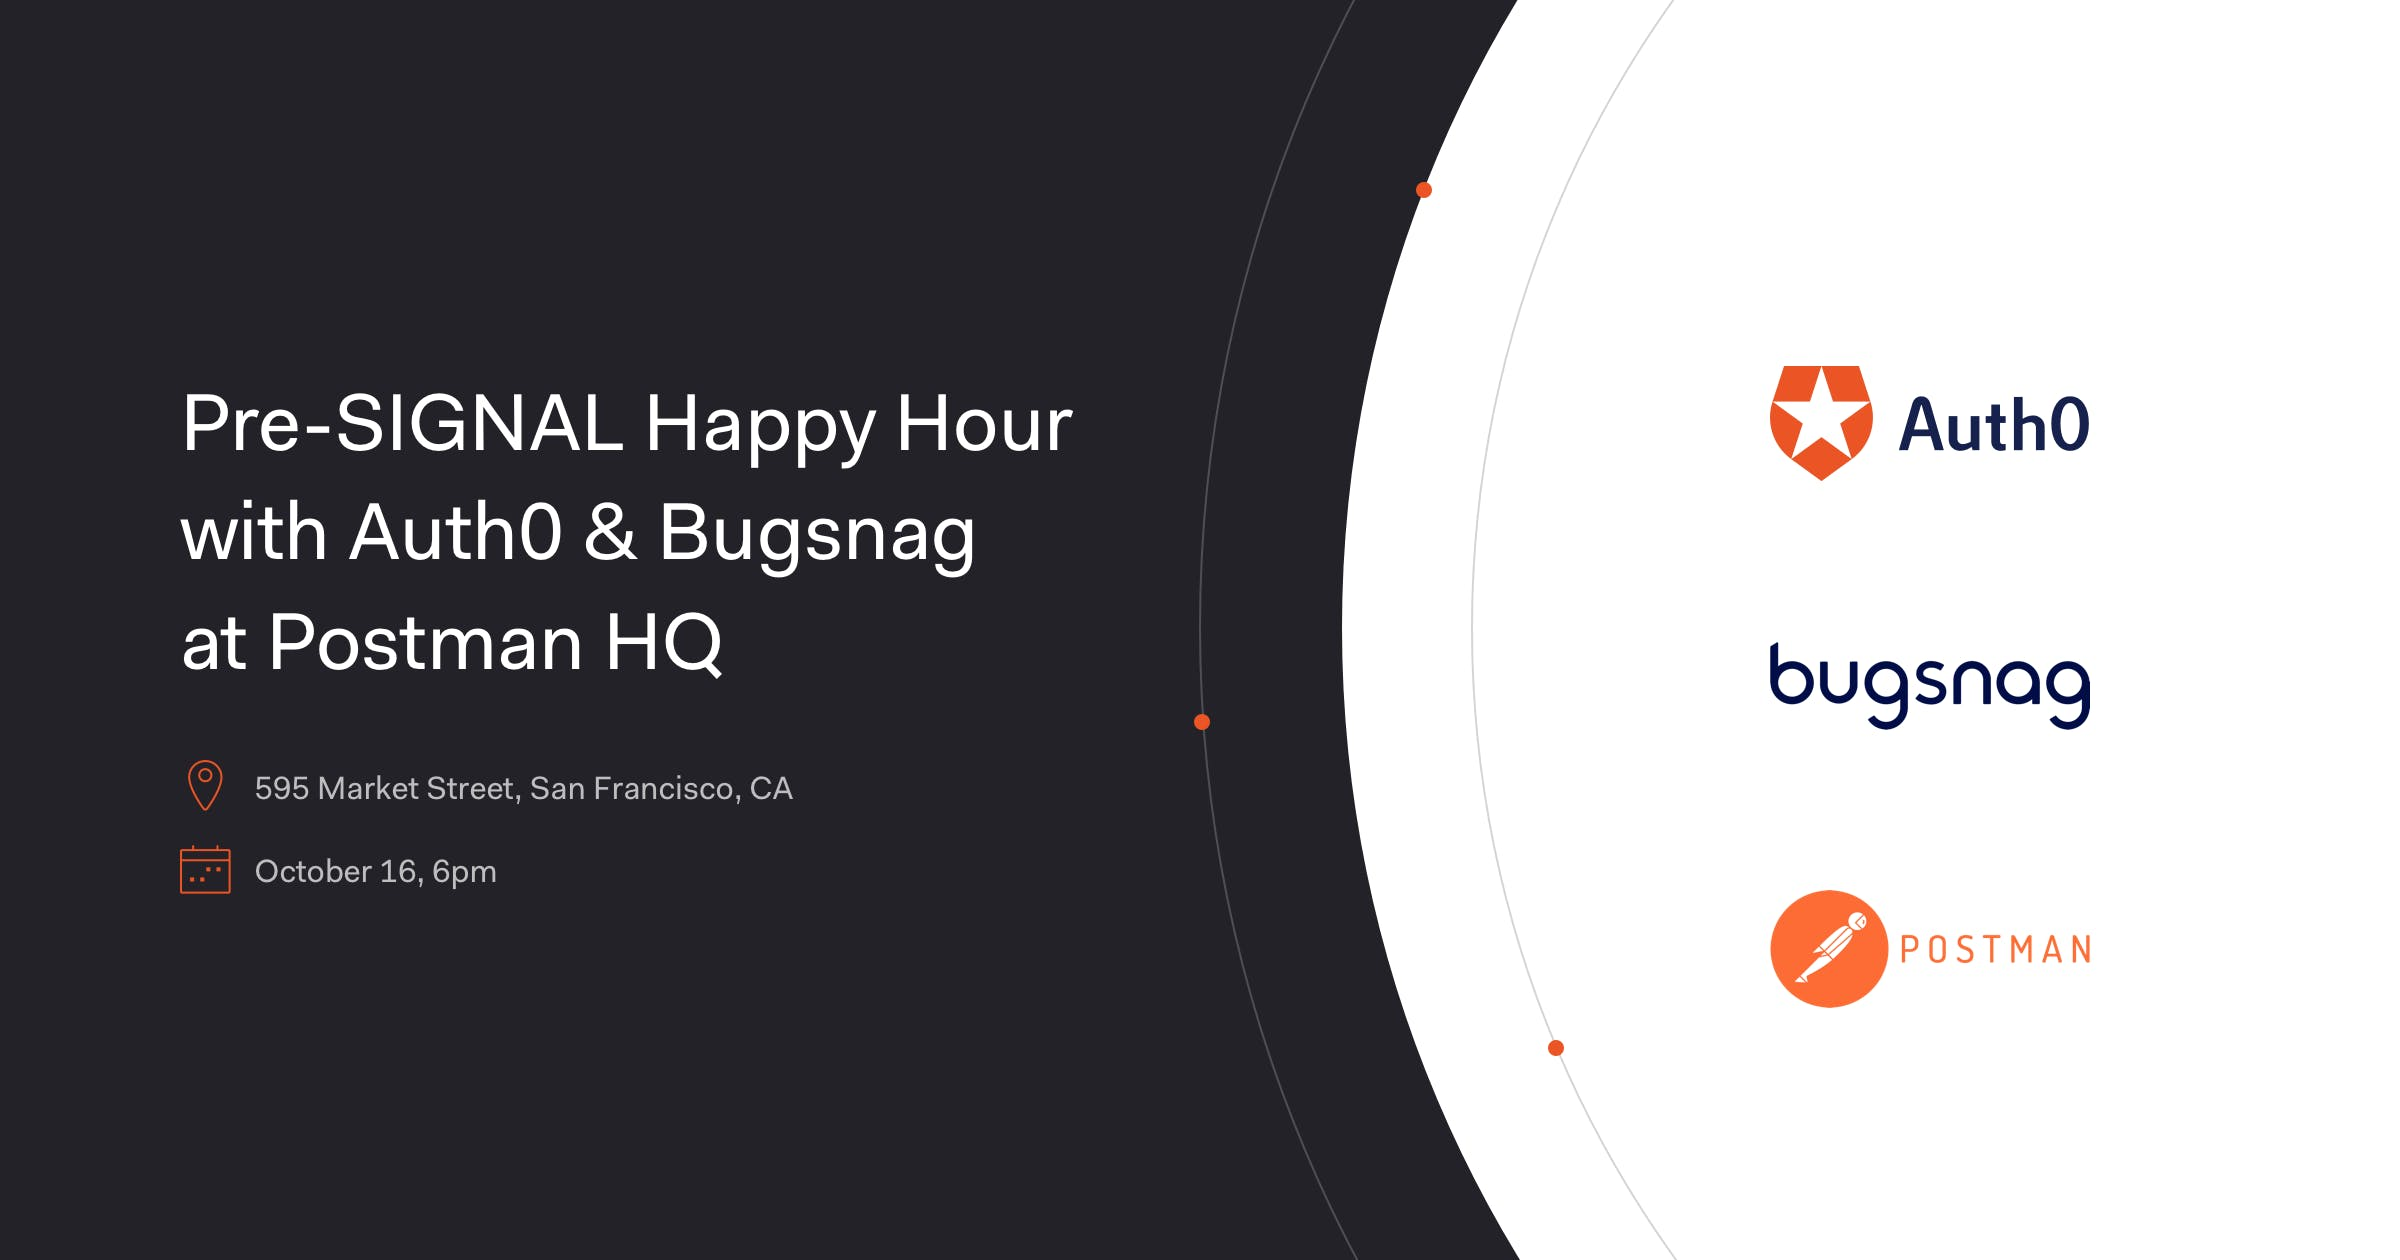 Pre SIGNAL Happy Hour Event With Auth0 Bugsnag At Postman HQ